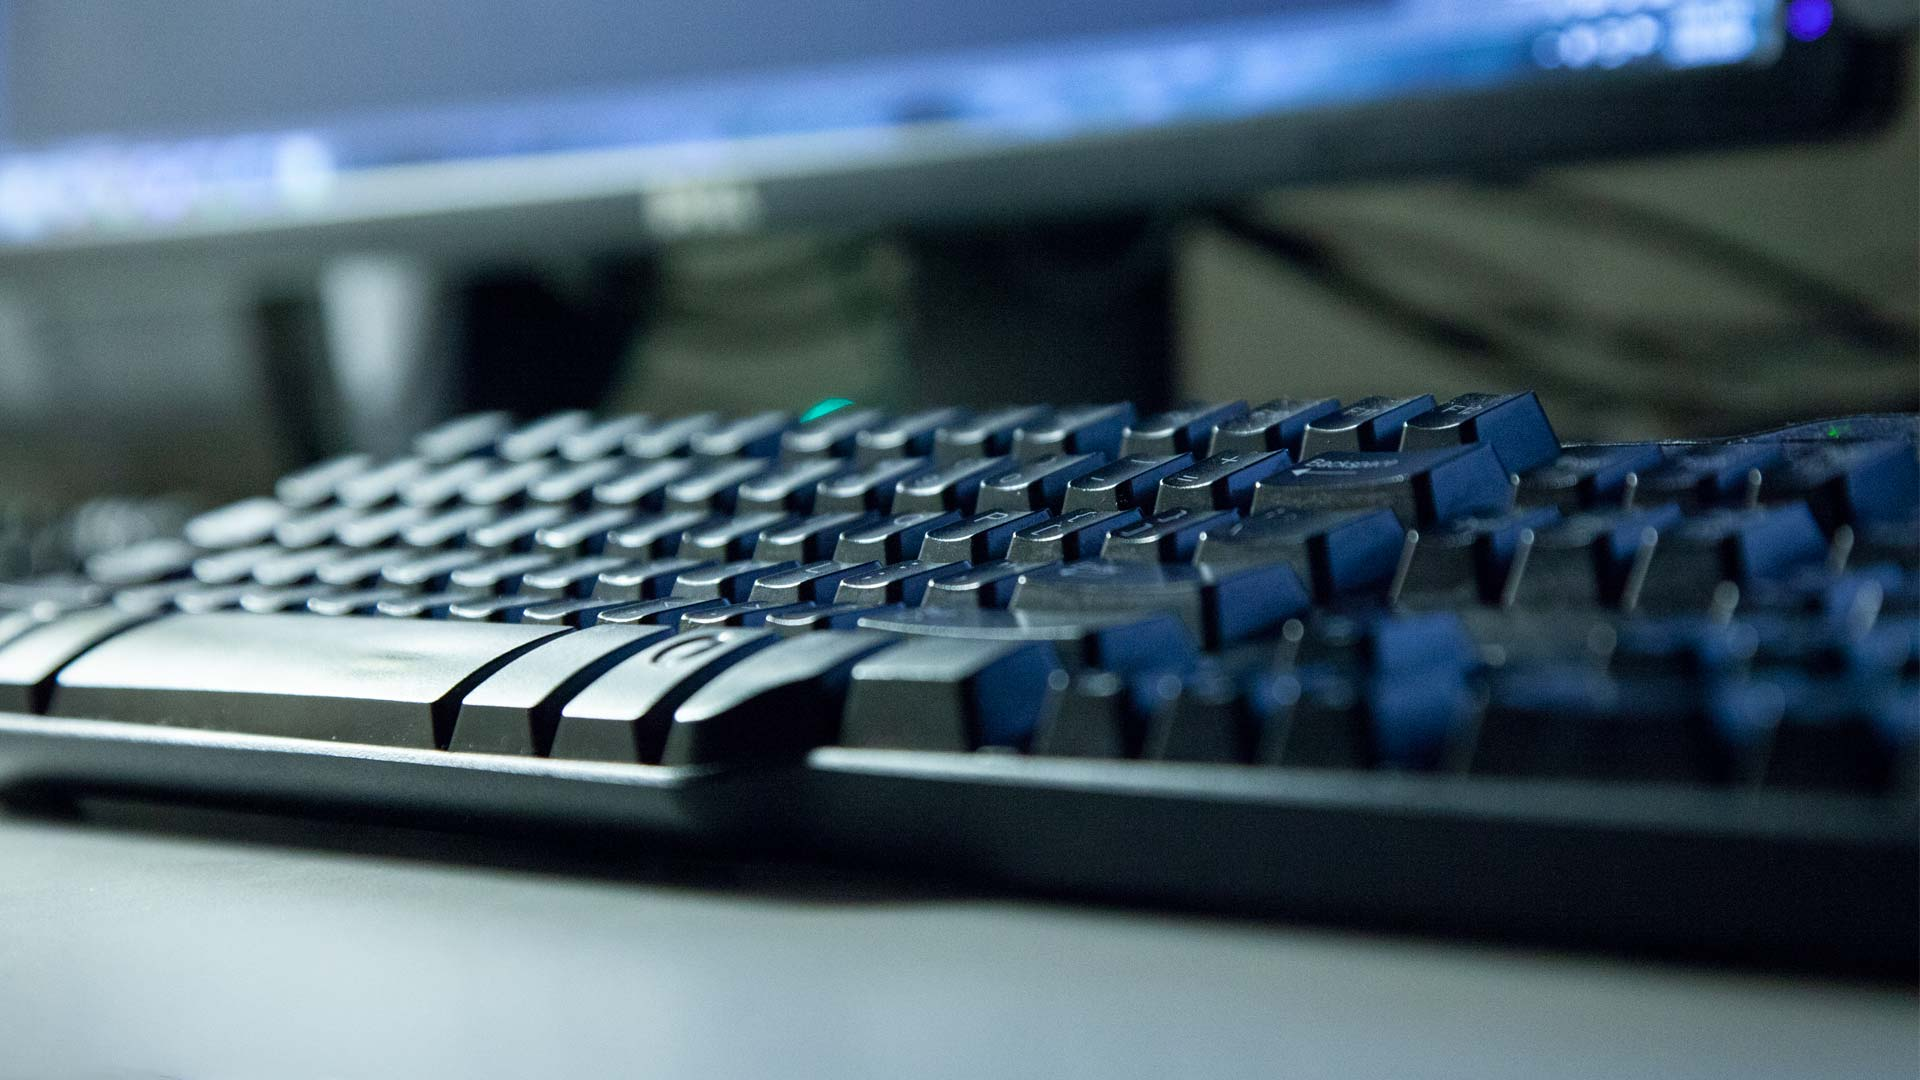 A keyboard on a desk.